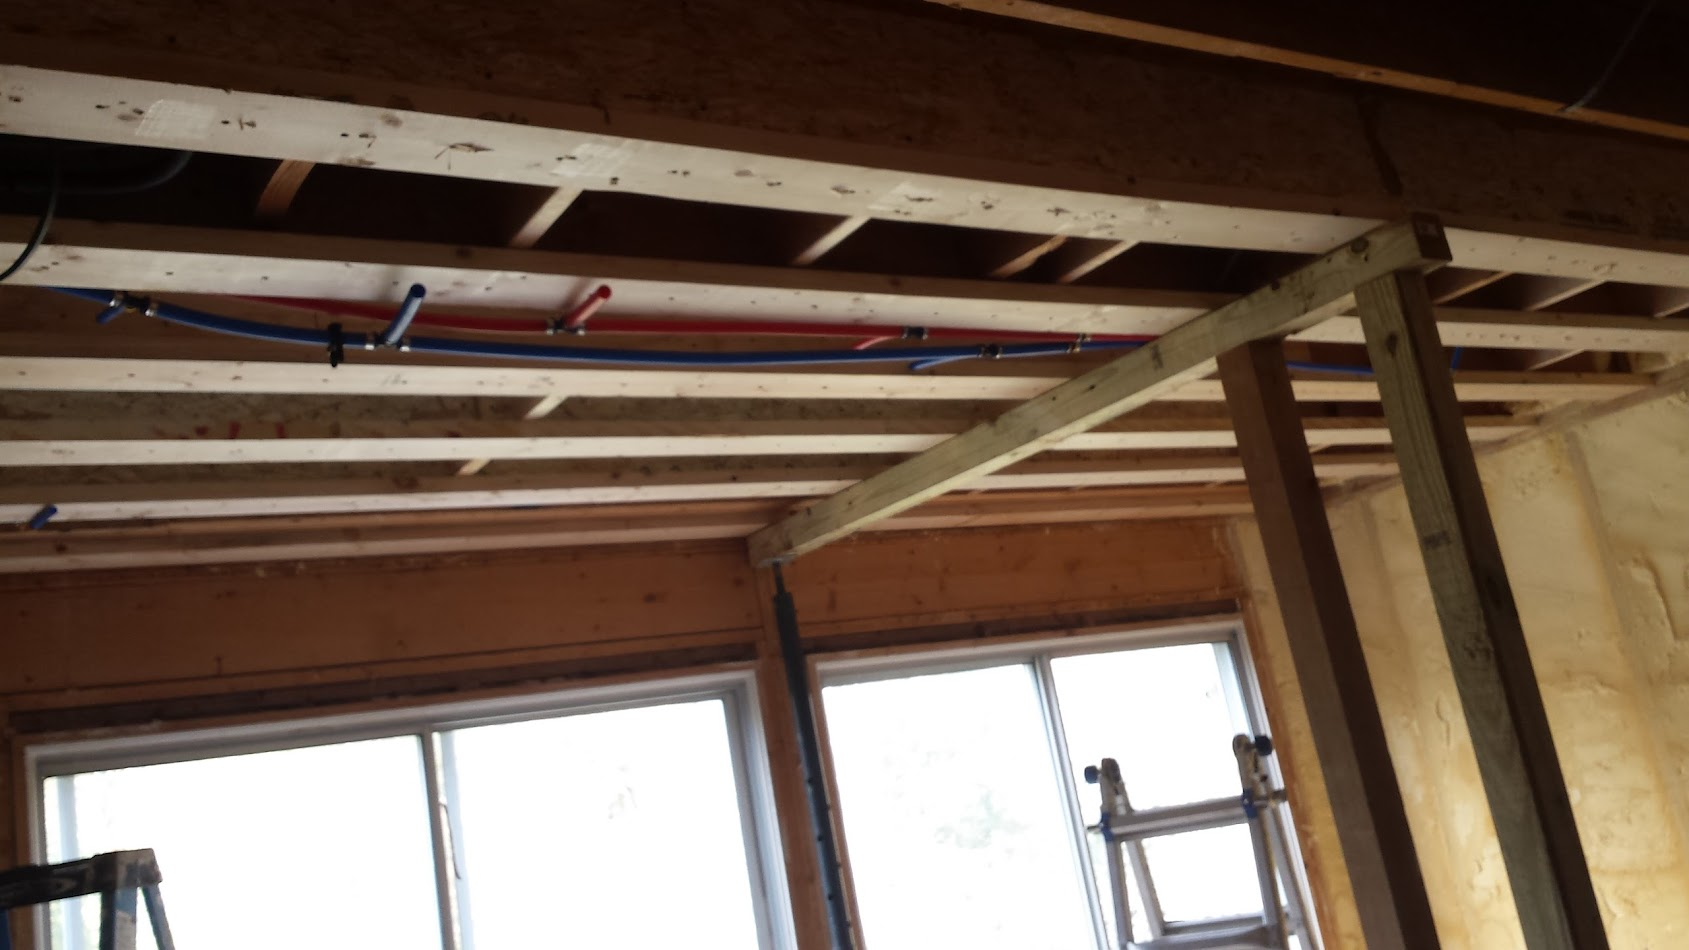 2x6s along the bottom of each joist and it's still jacked up